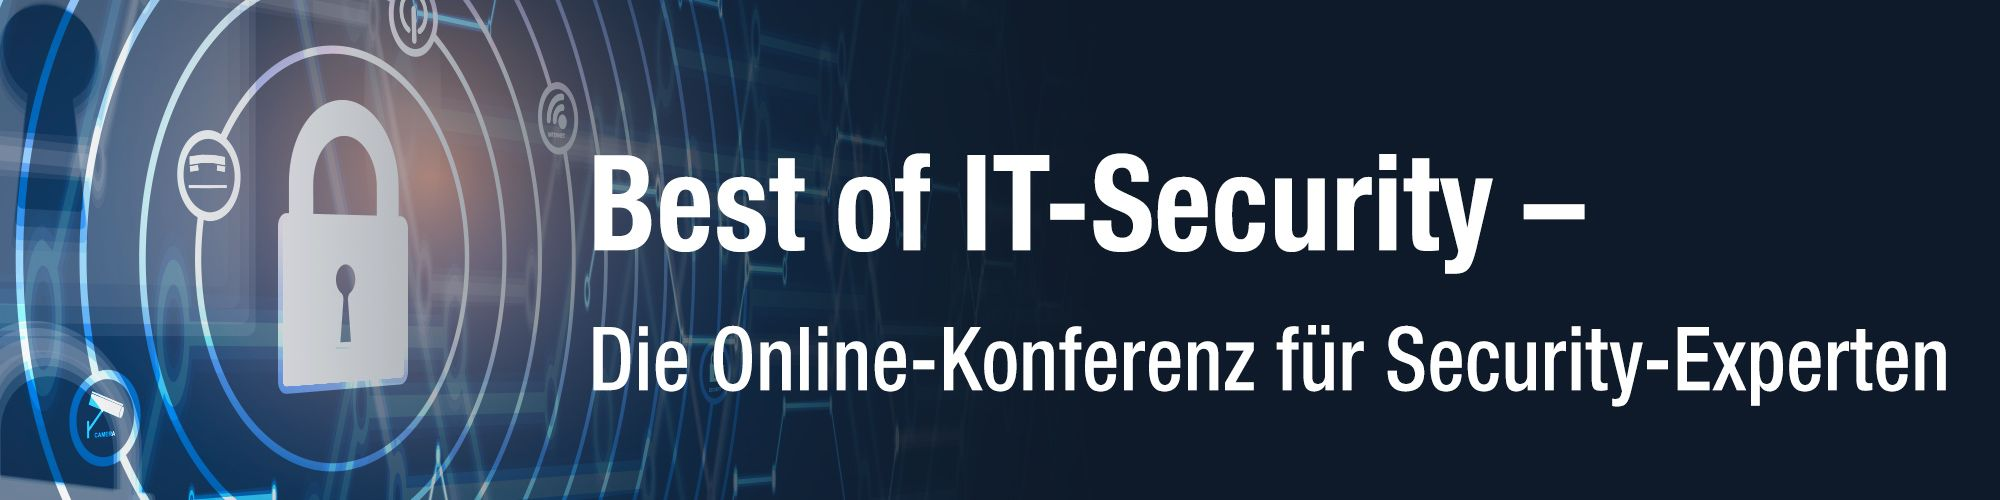 Best of IT-Security